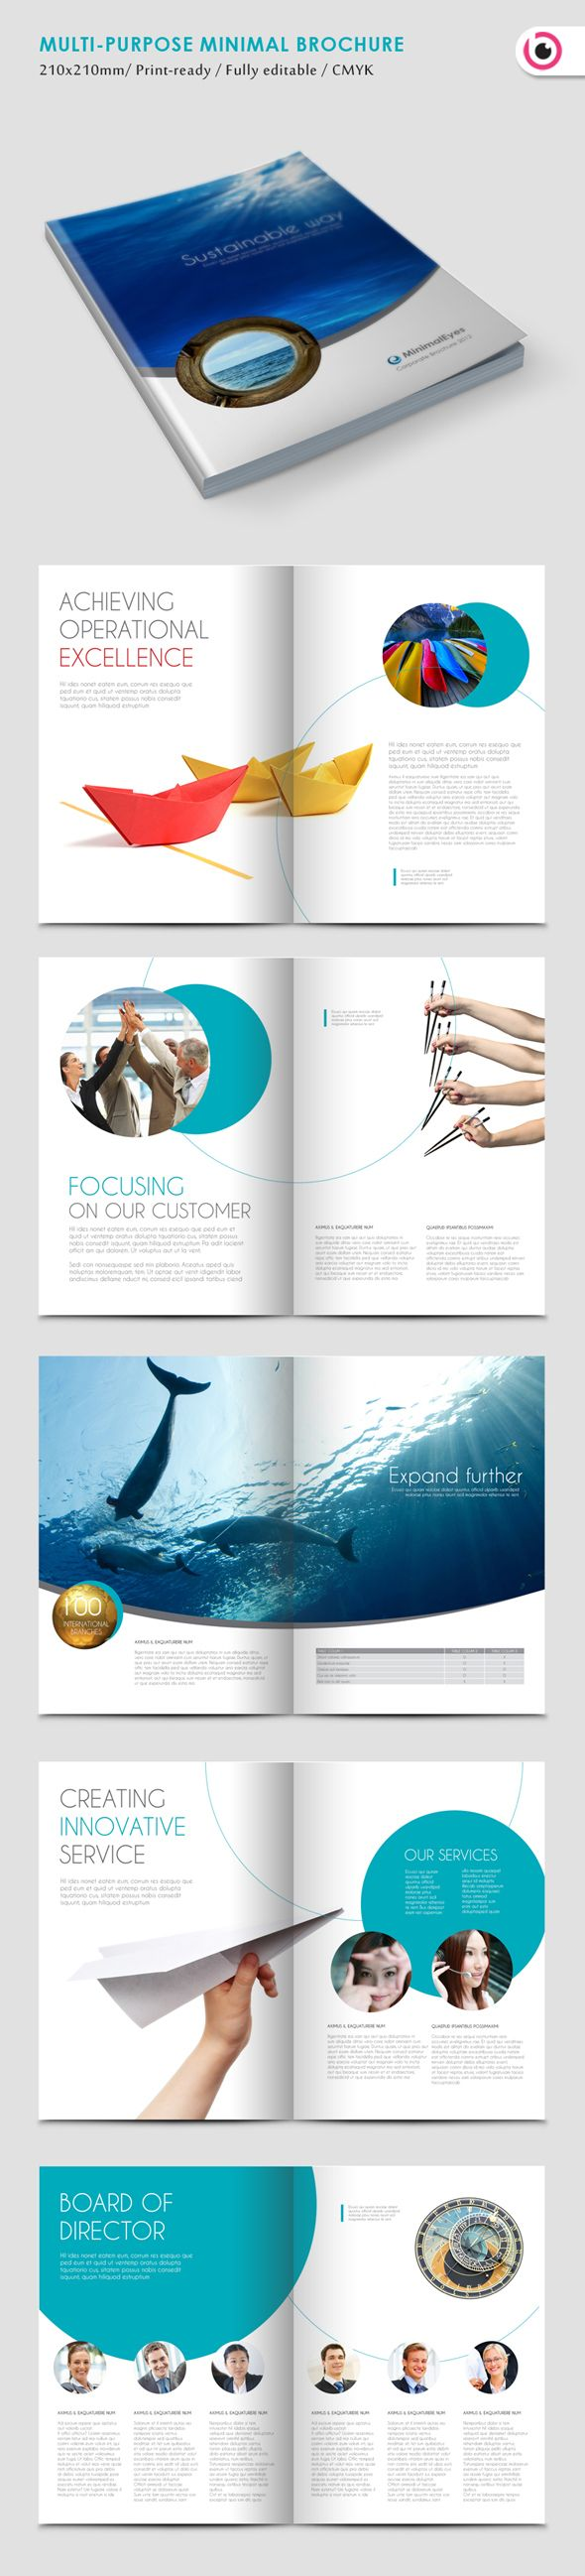 앞면표지잍 내용중에 태양광내려오는 바다장면Using photography in print - Minimal Eyes Brochure Template by Tony Huynh, via Behance